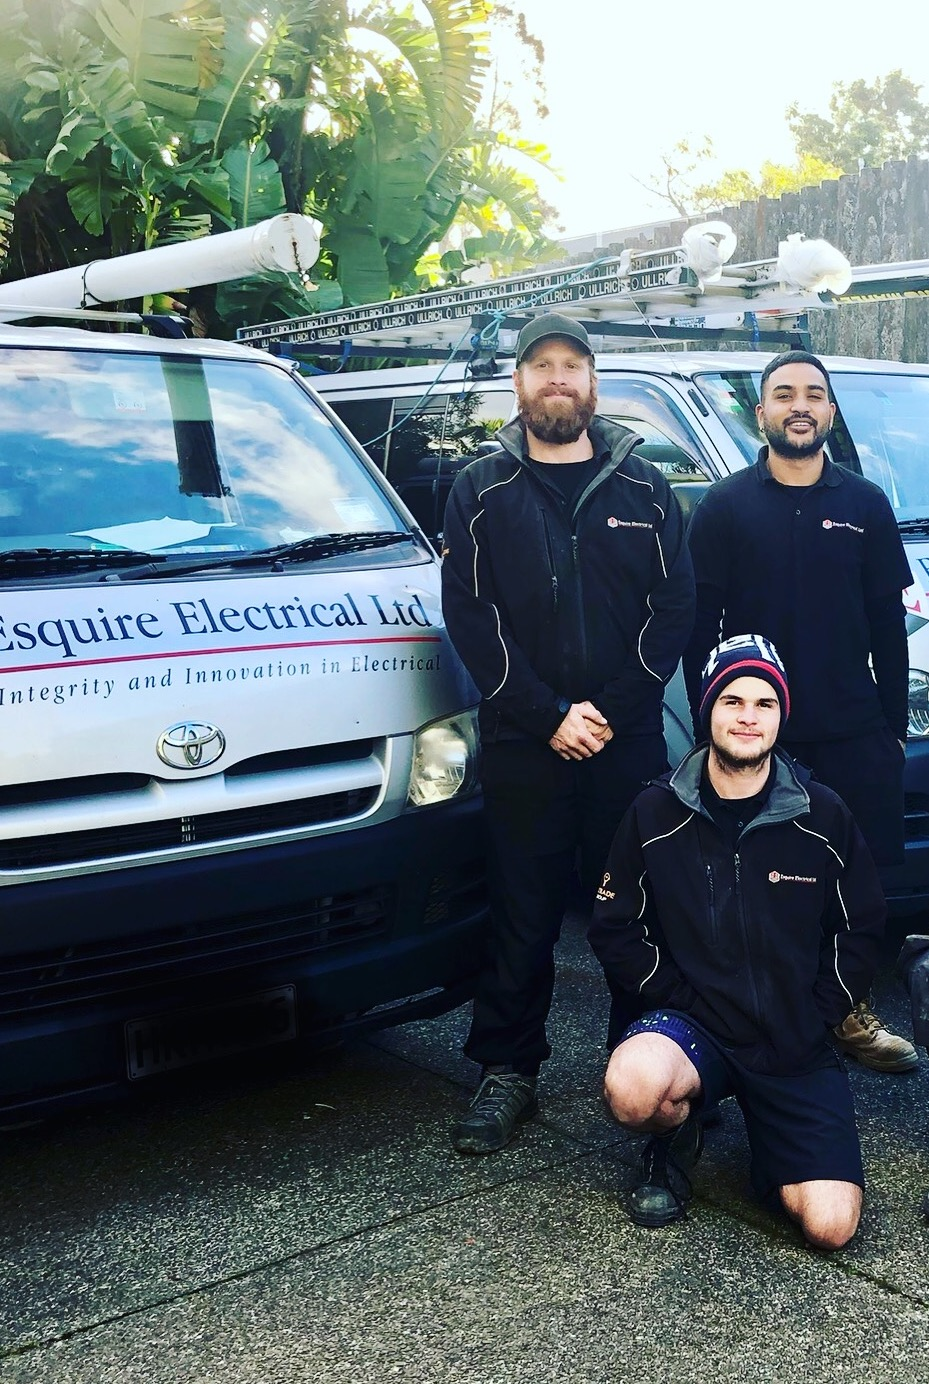 auckland-electrician